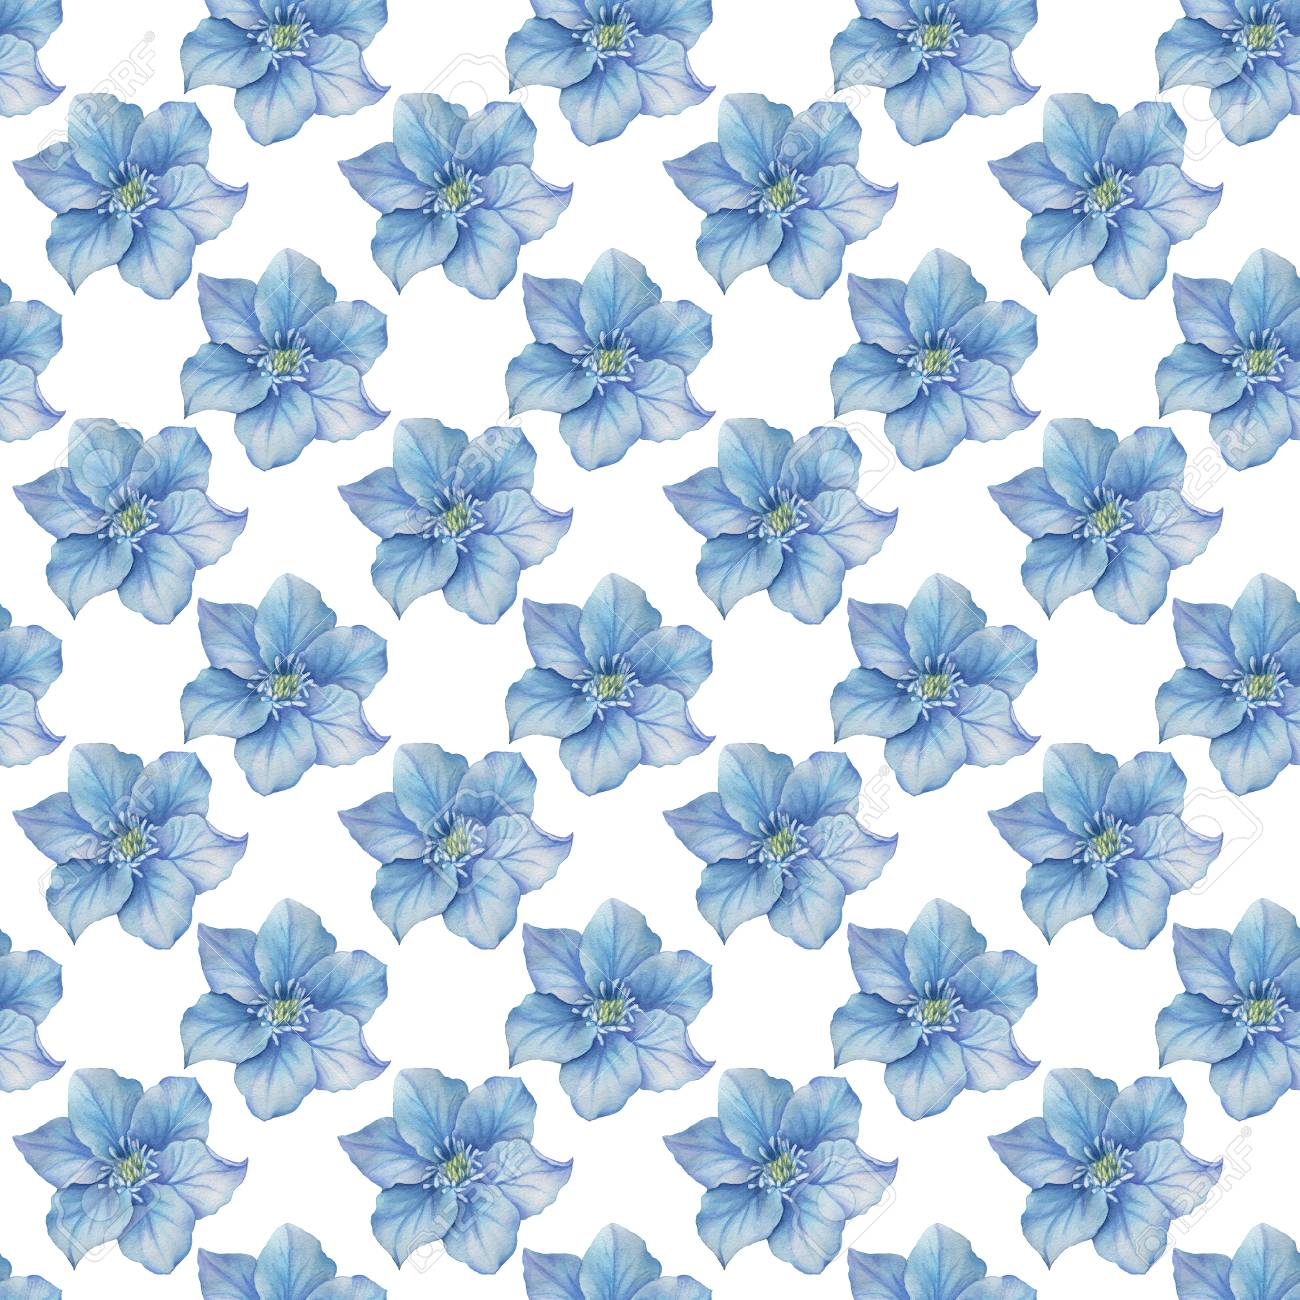 Watercolor flowers seamless pattern. Bright colors watercolor background. - 67462525